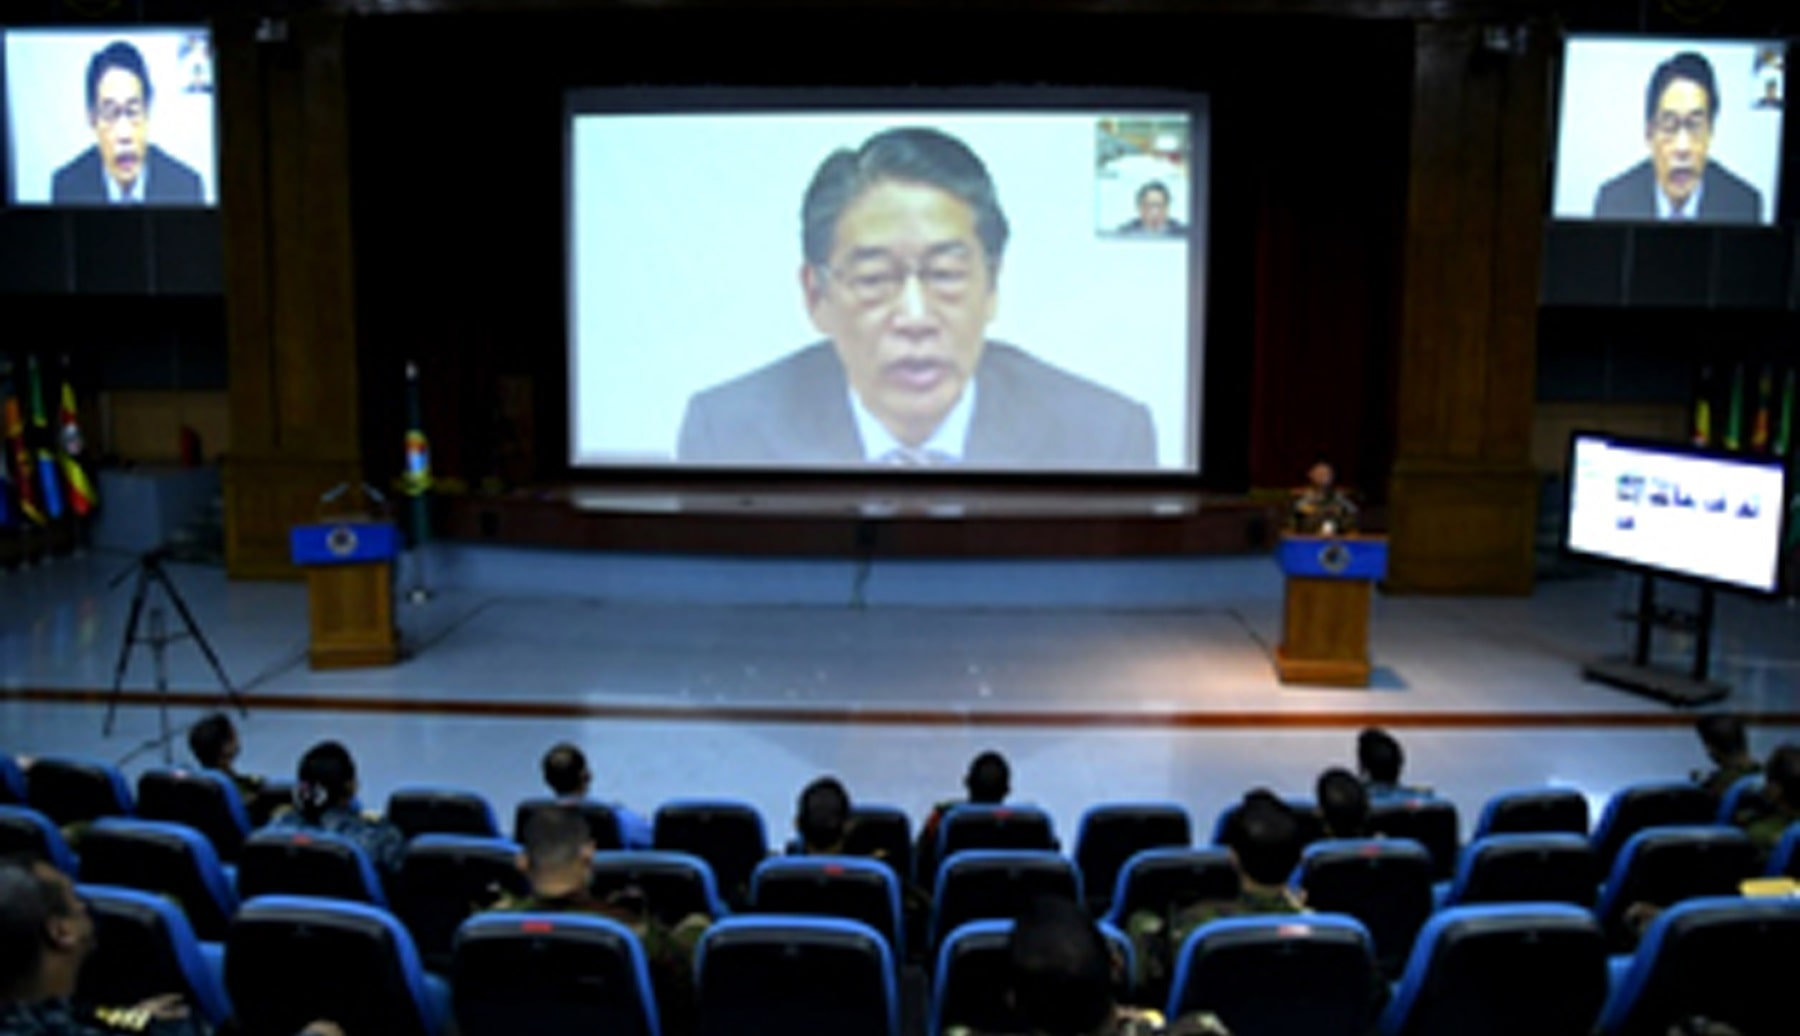 Japanese envoy speaks on 50 years of friendship at DSCSC